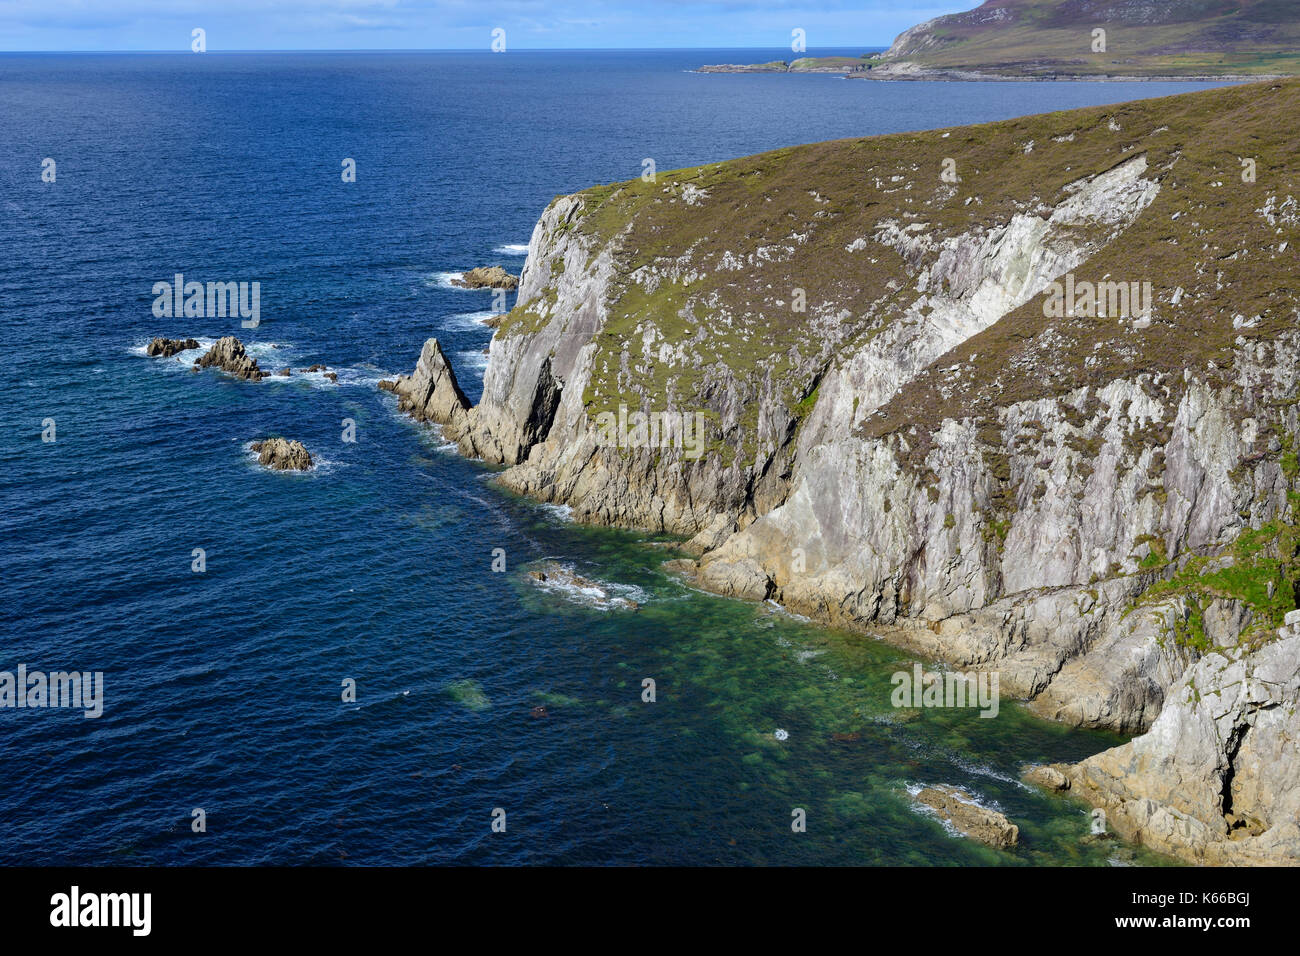 Rugged coastline along Ashleam Bay on Achill Island, County Mayo, Republic of Ireland - Stock Image